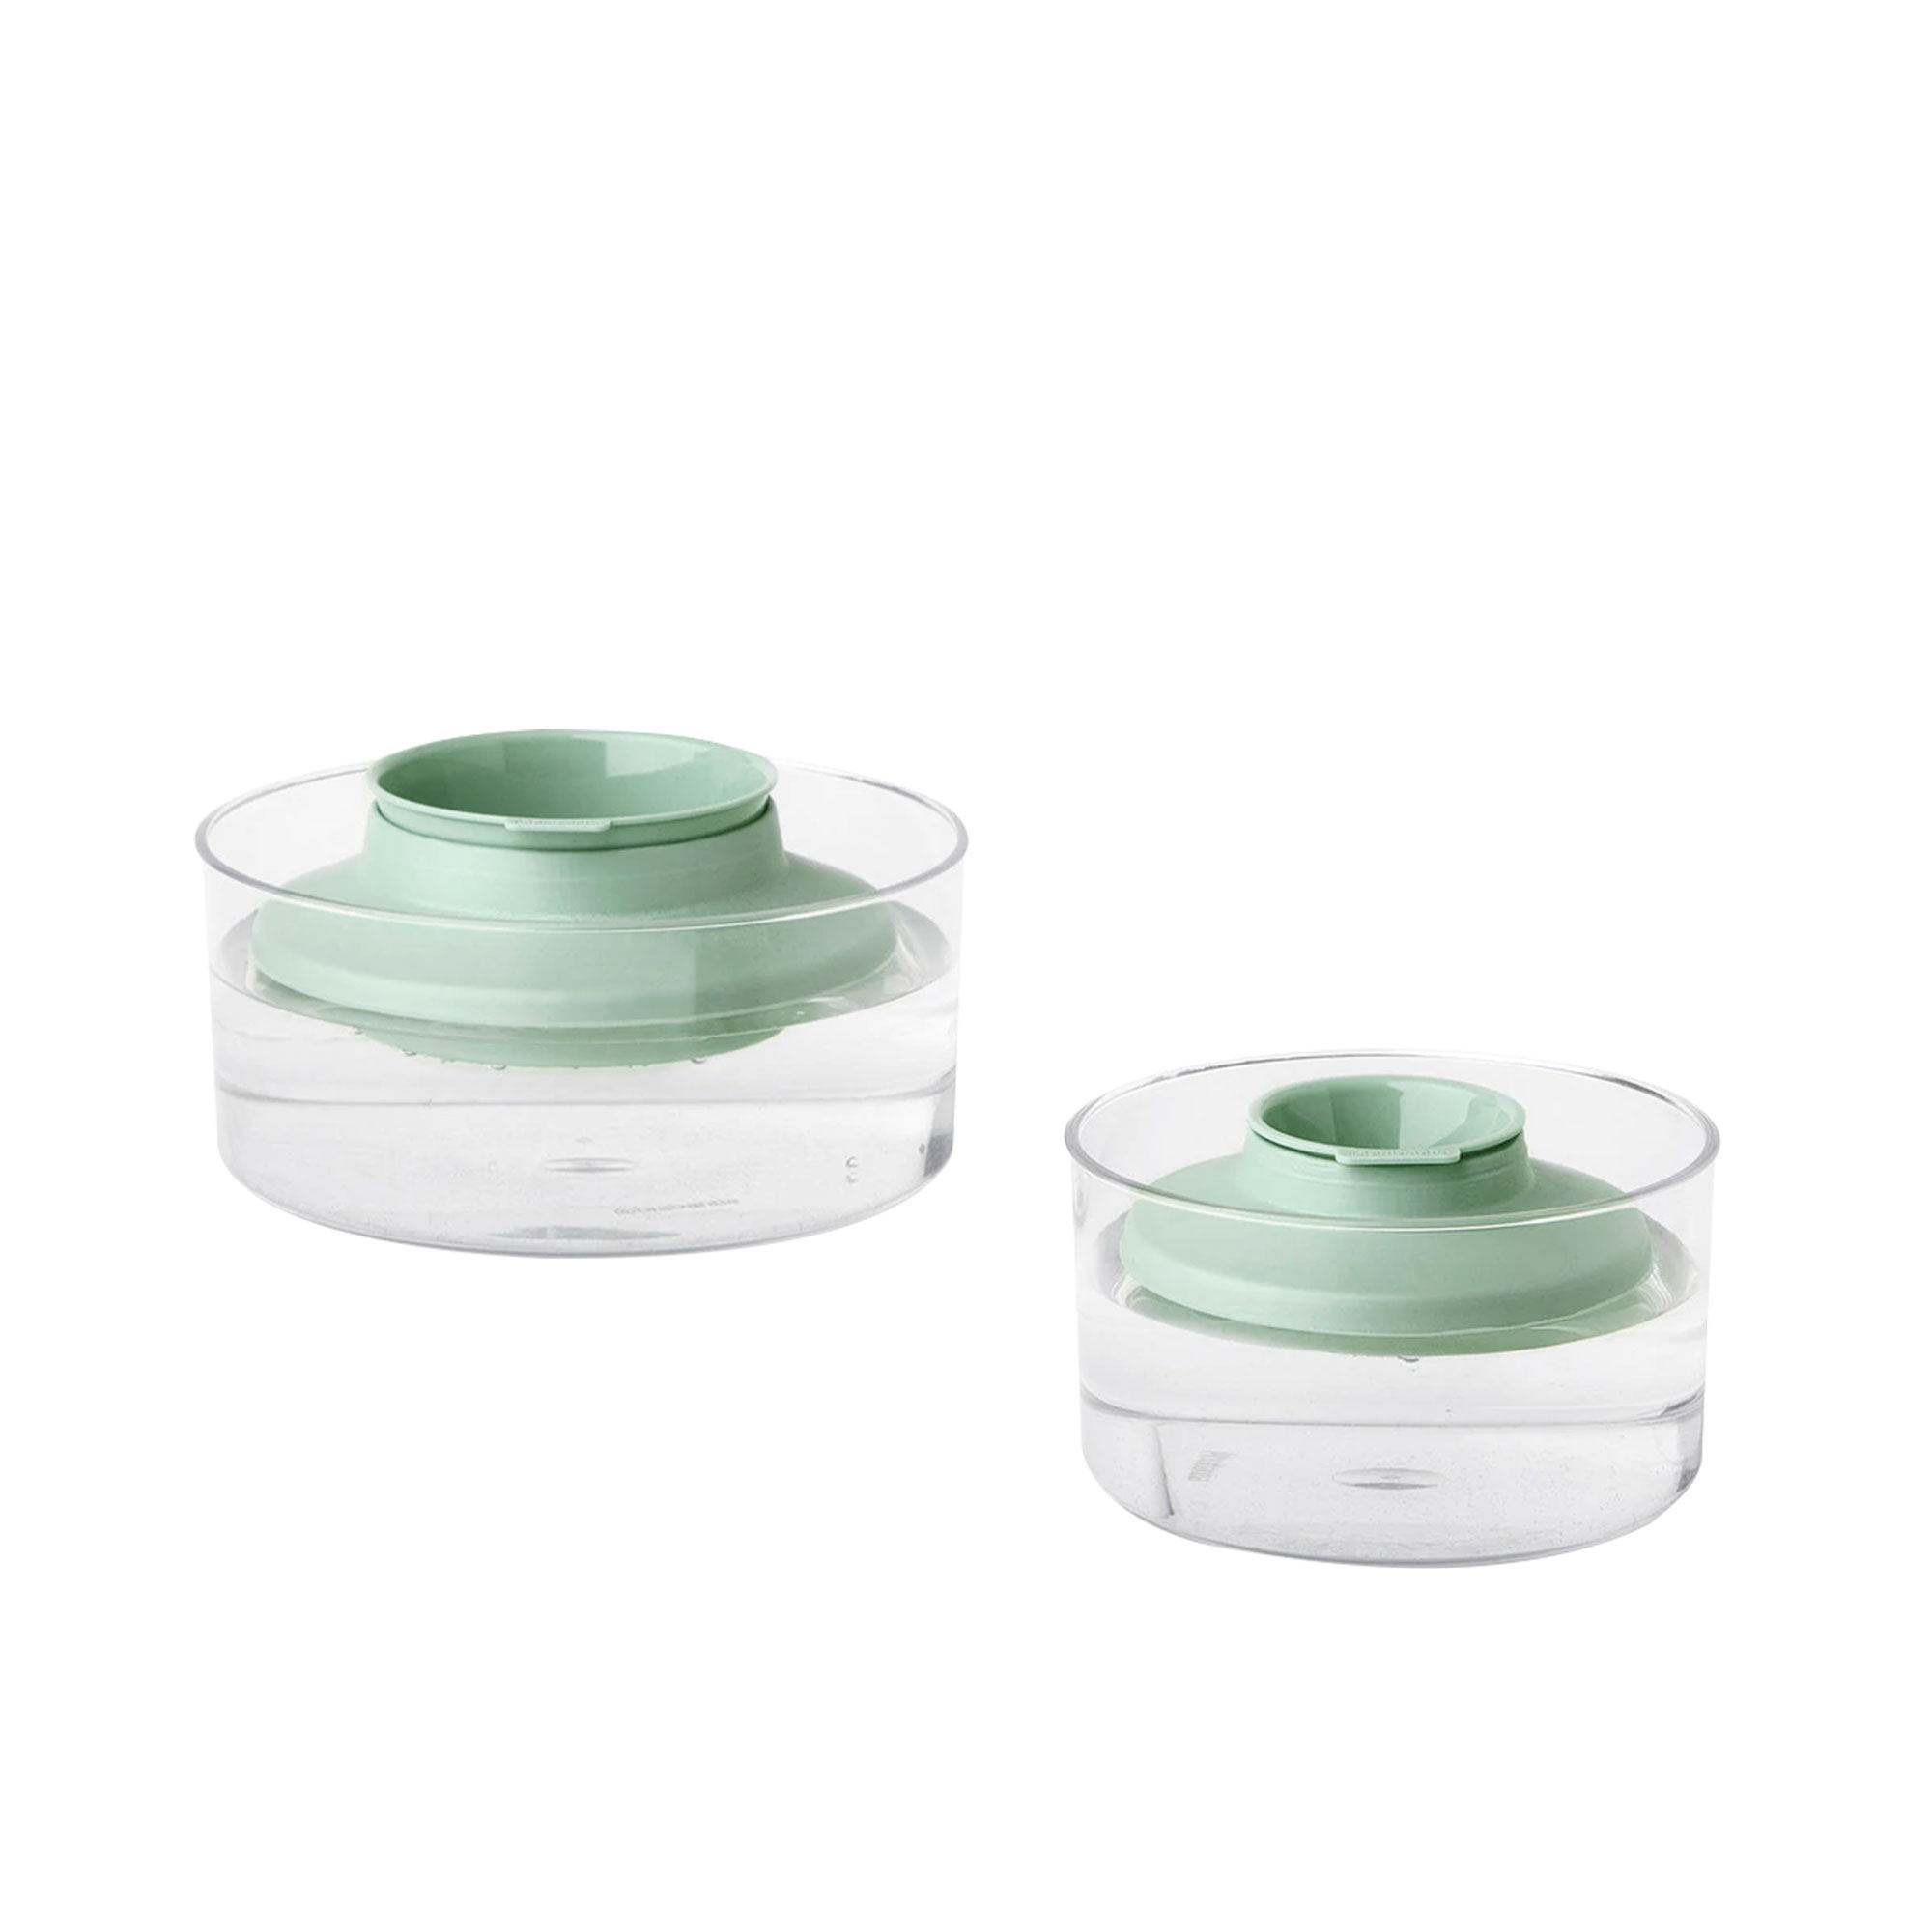 Brabantia Tasty+ Herbs and Vegetables Regrow Kit Jade Green